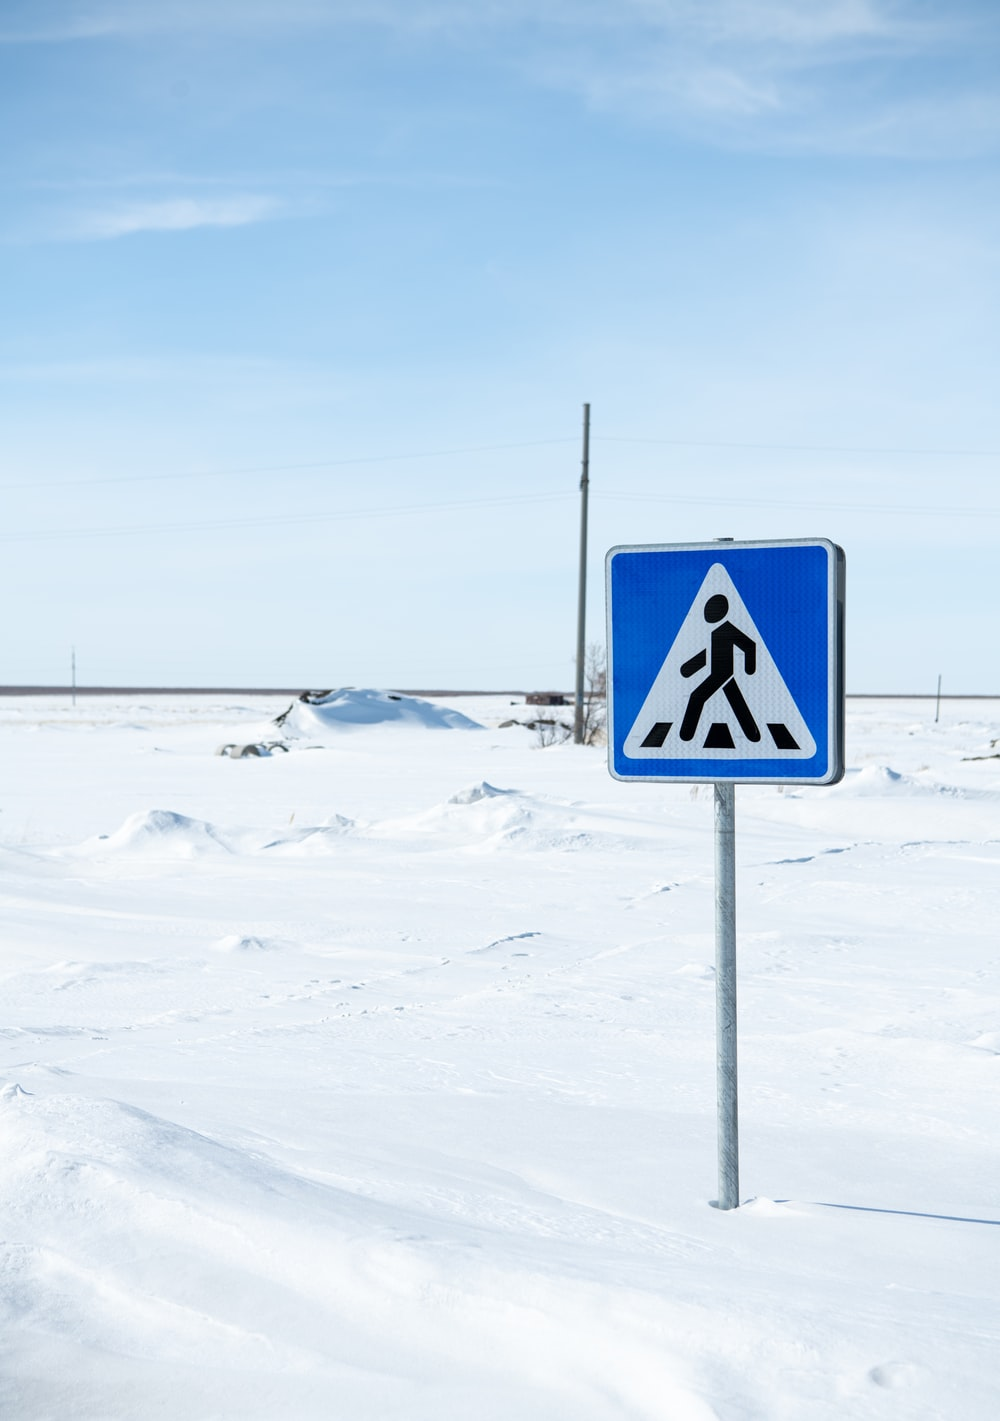 blue and white no smoking sign on snow covered ground